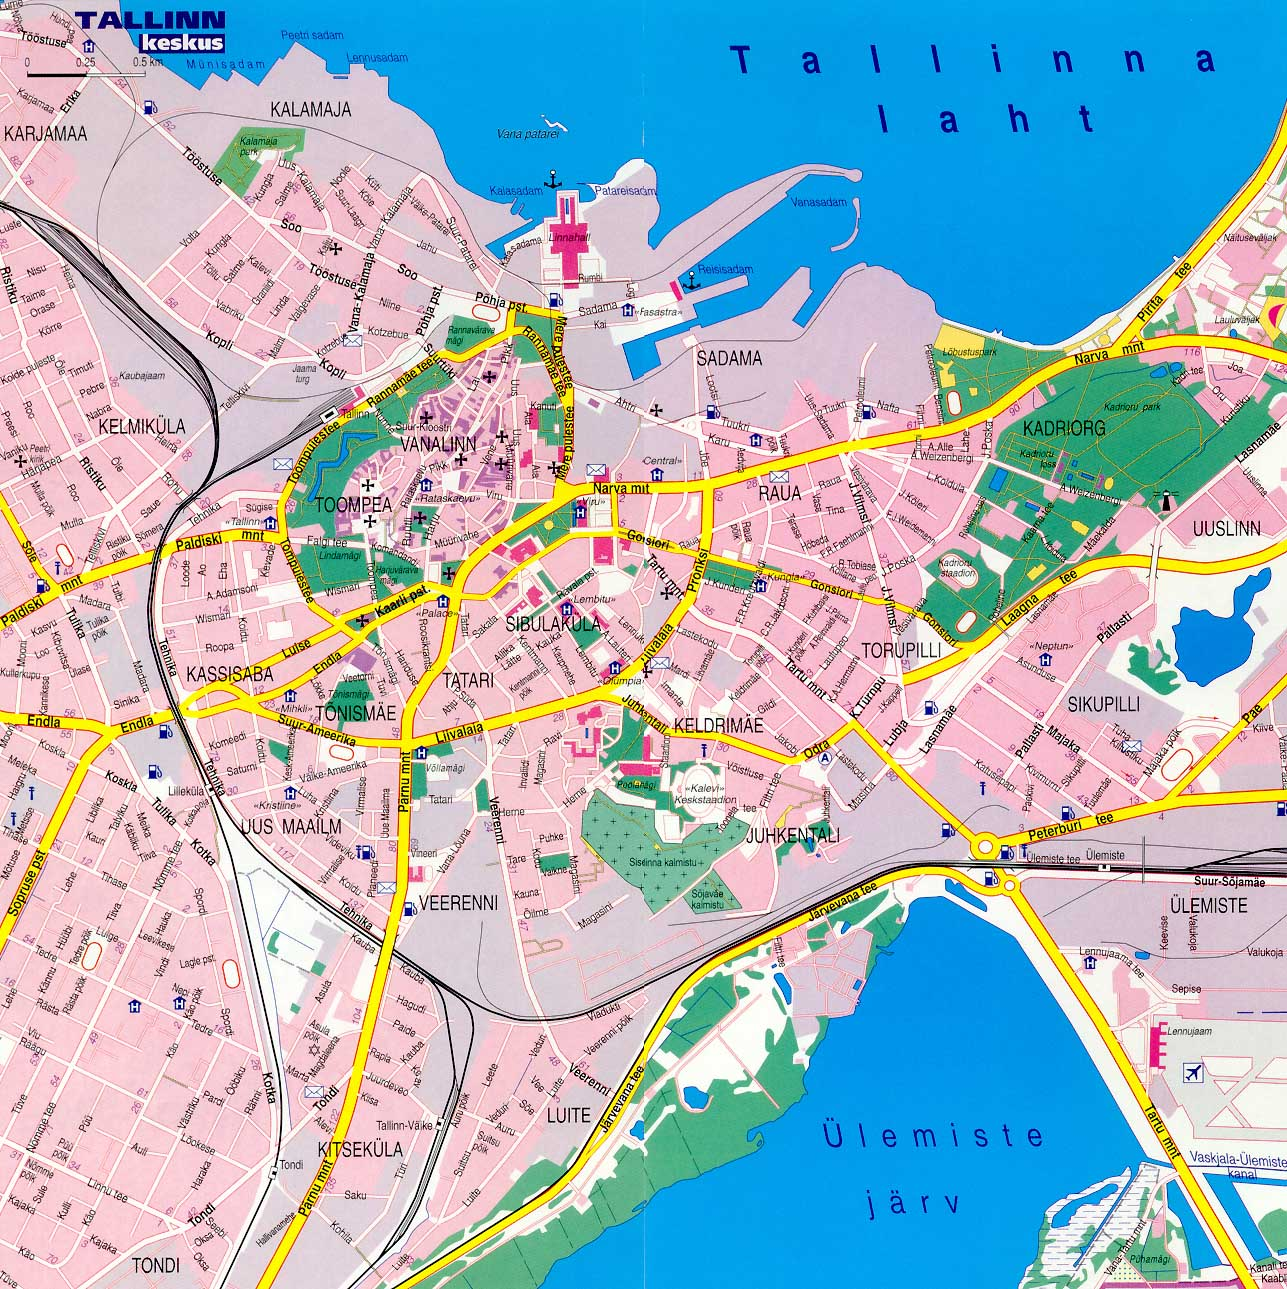 Tallinn Map Detailed City and Metro Maps of Tallinn for Download